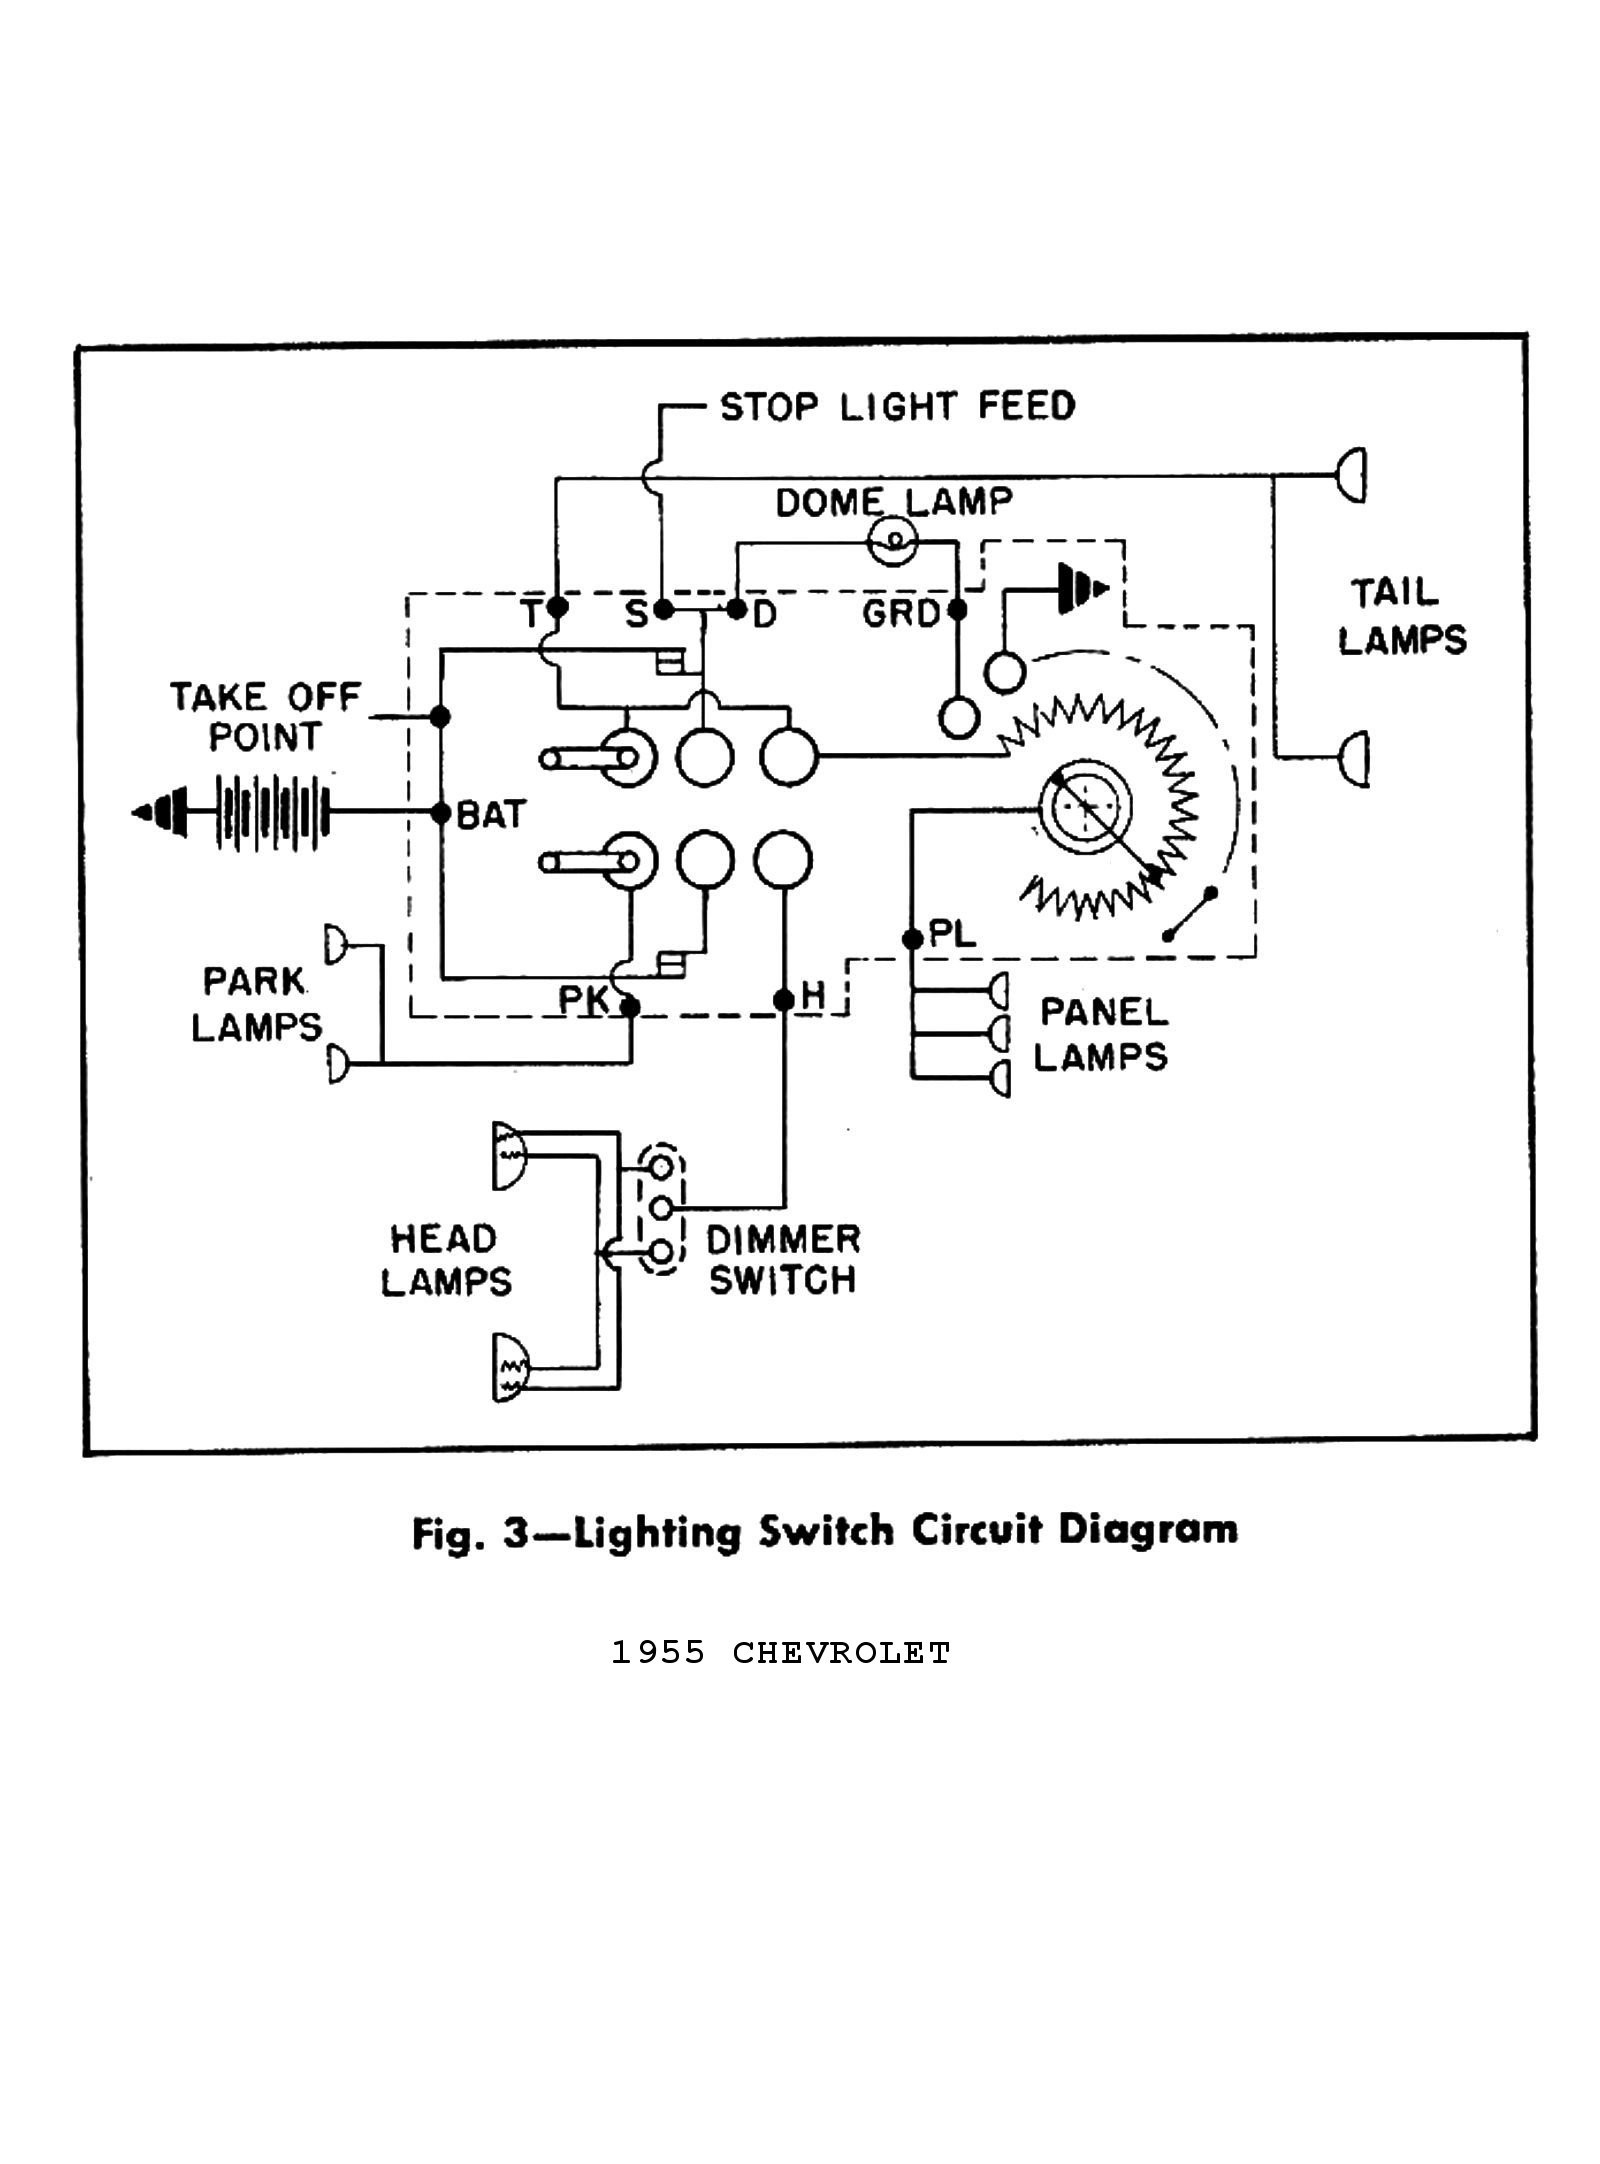 Headlight Switch Wiring Diagram Best Of 67 Rs Doors - Wellread - Headlight Switch Wiring Diagram Chevy Truck